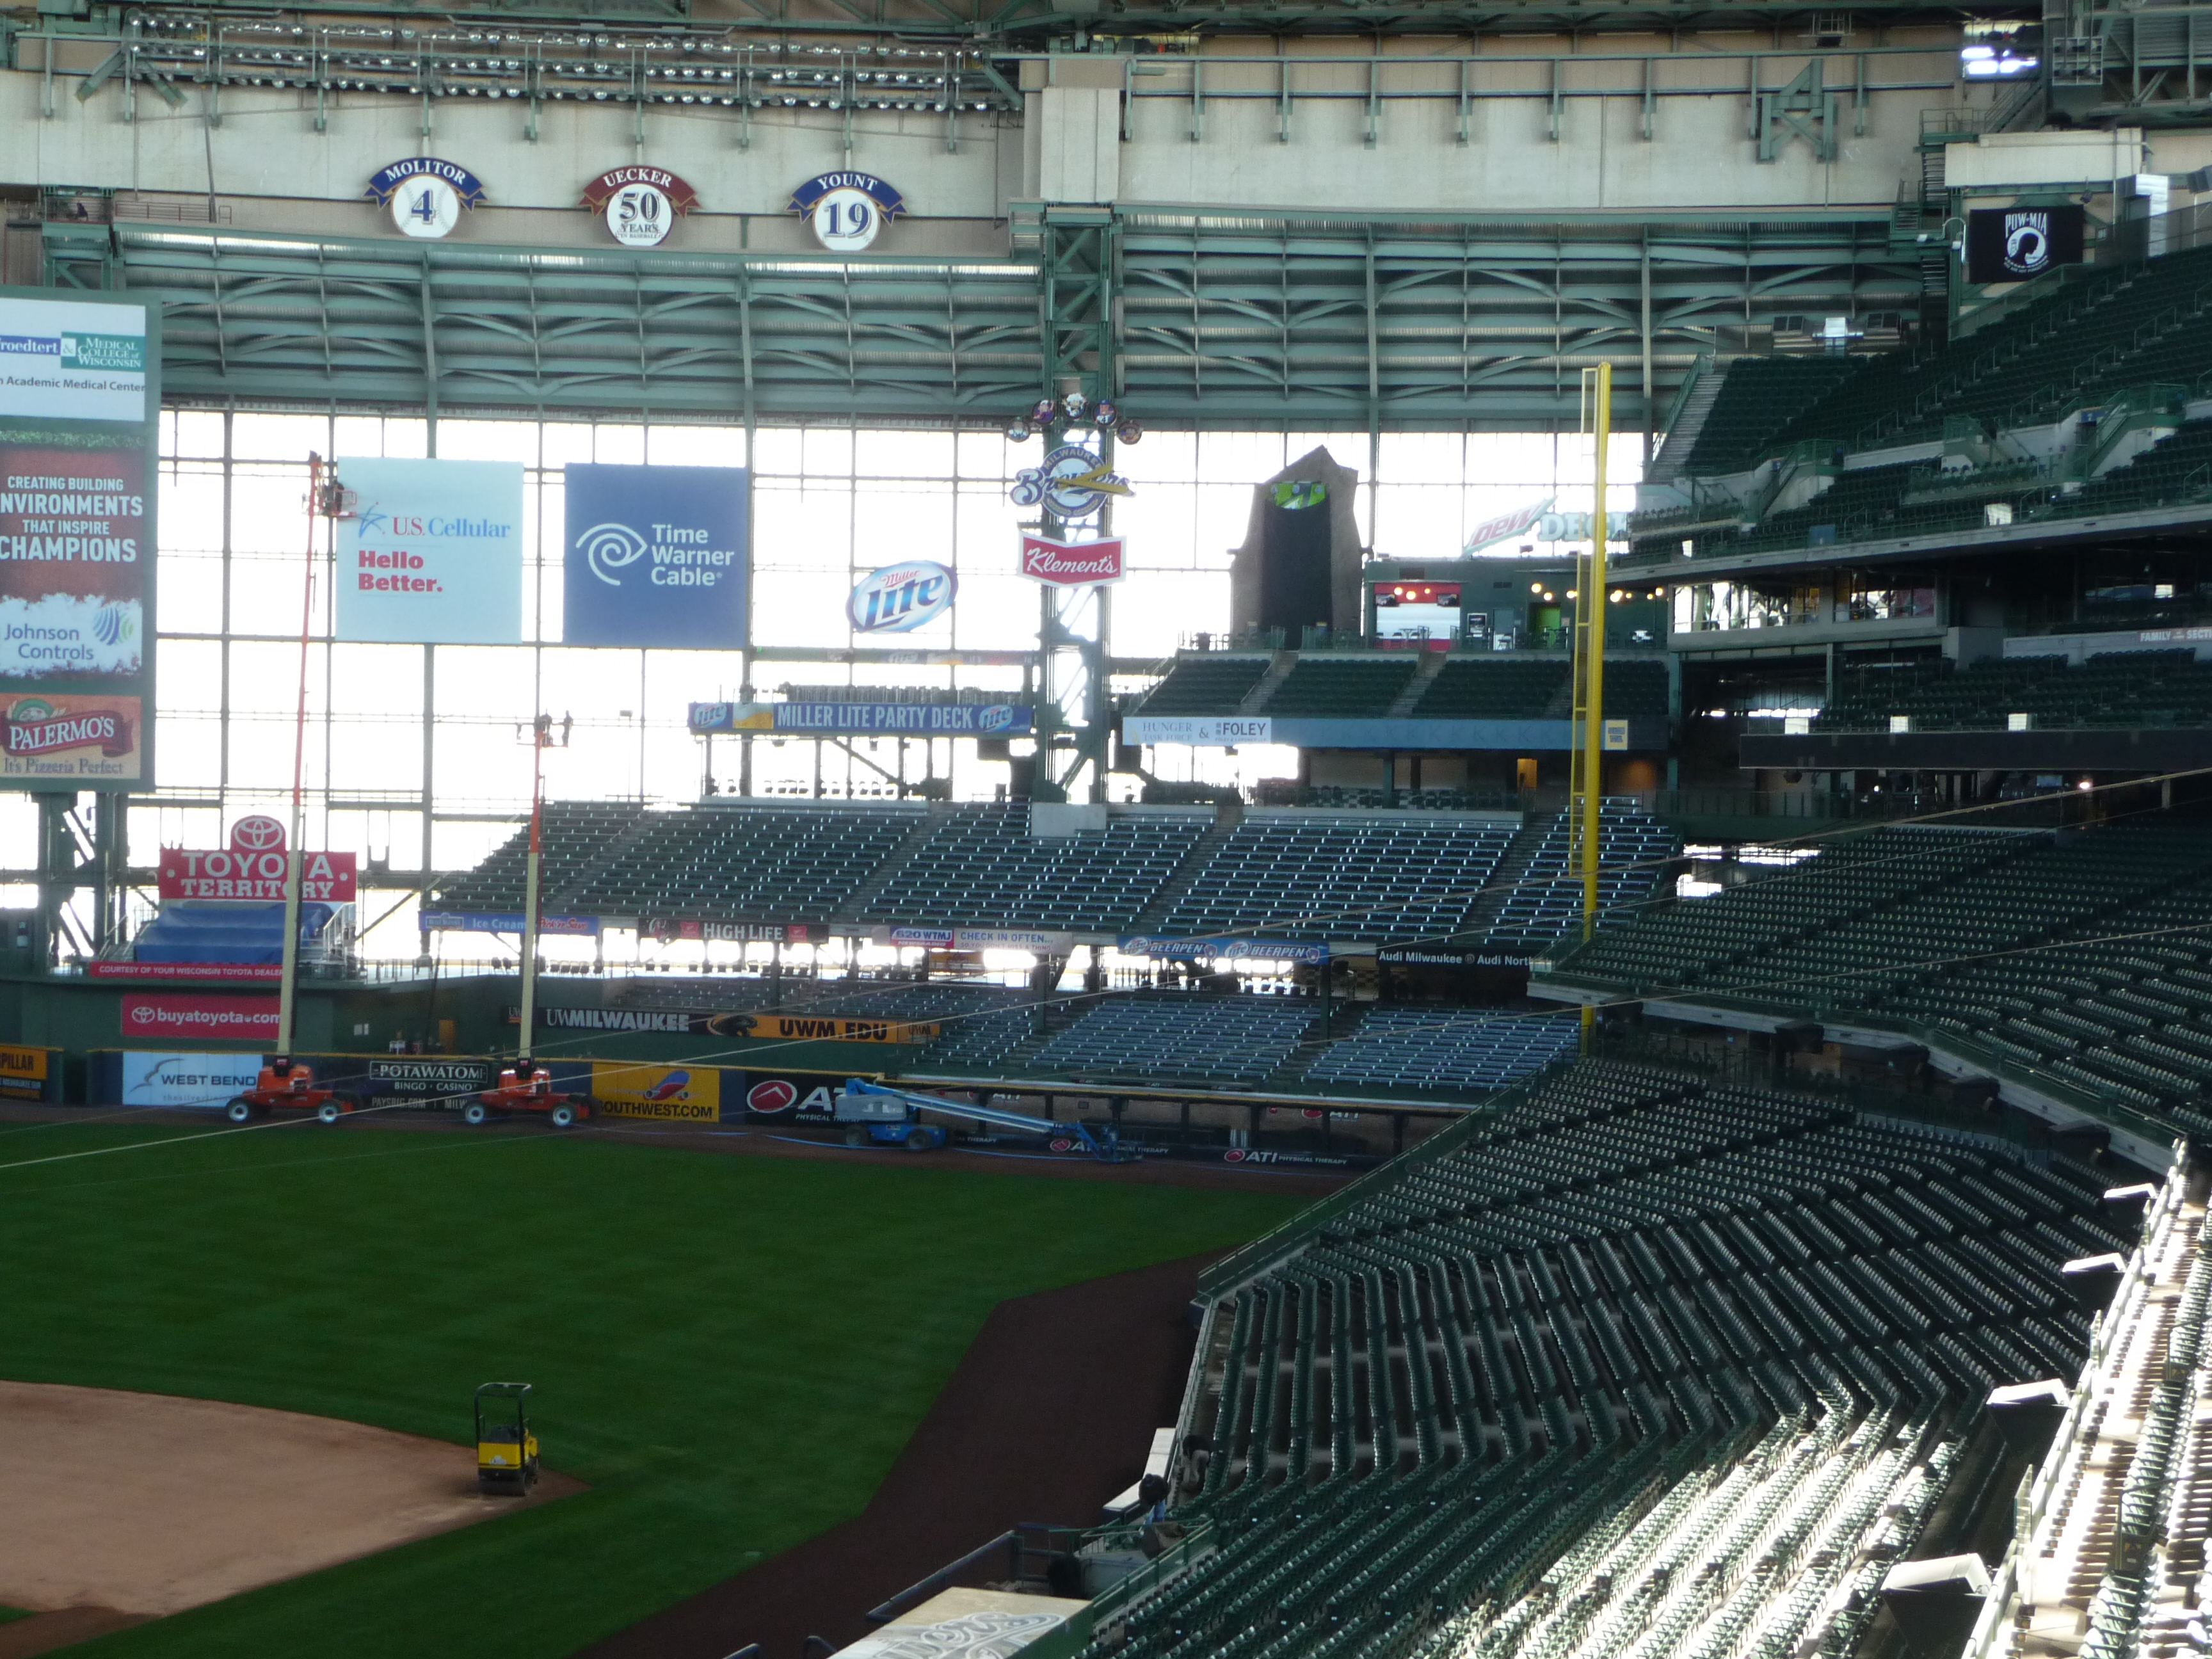 First Look At What S New At Miller Park For 2013 171 Cait